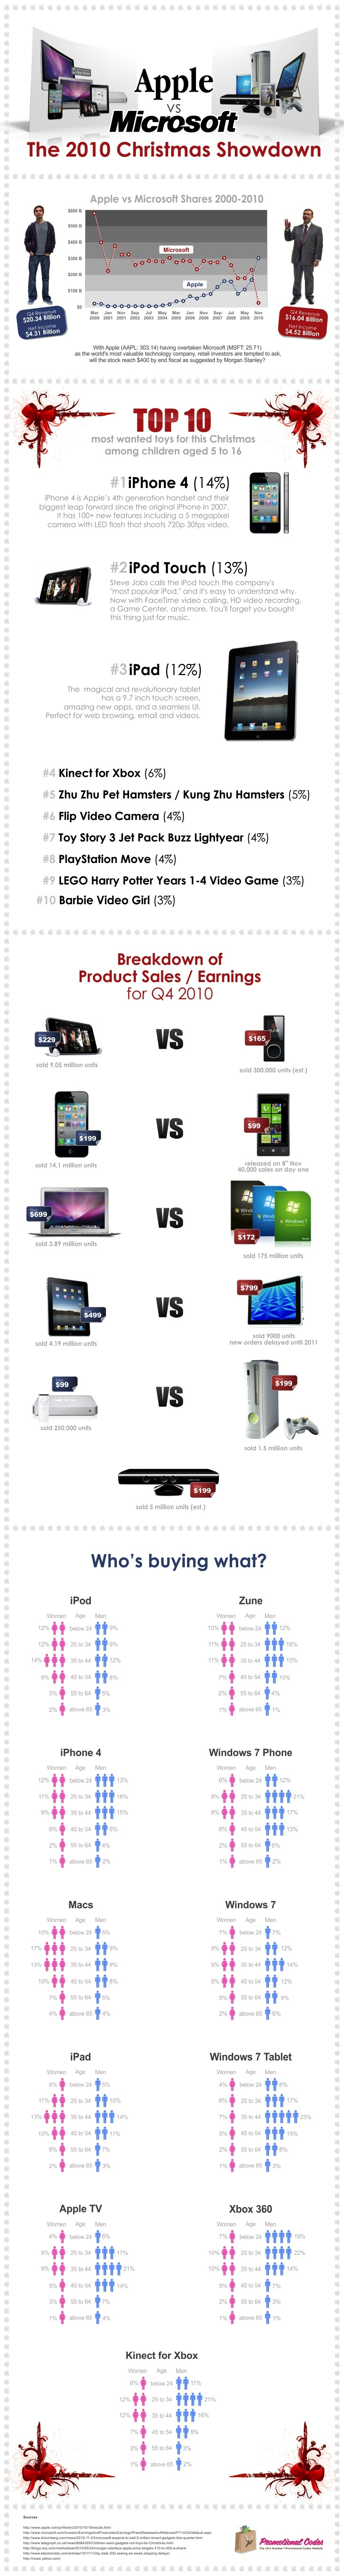 apple microsoft christmas sales graphic2 Apple Versus Microsoft: The Christmas Showdown Infographic